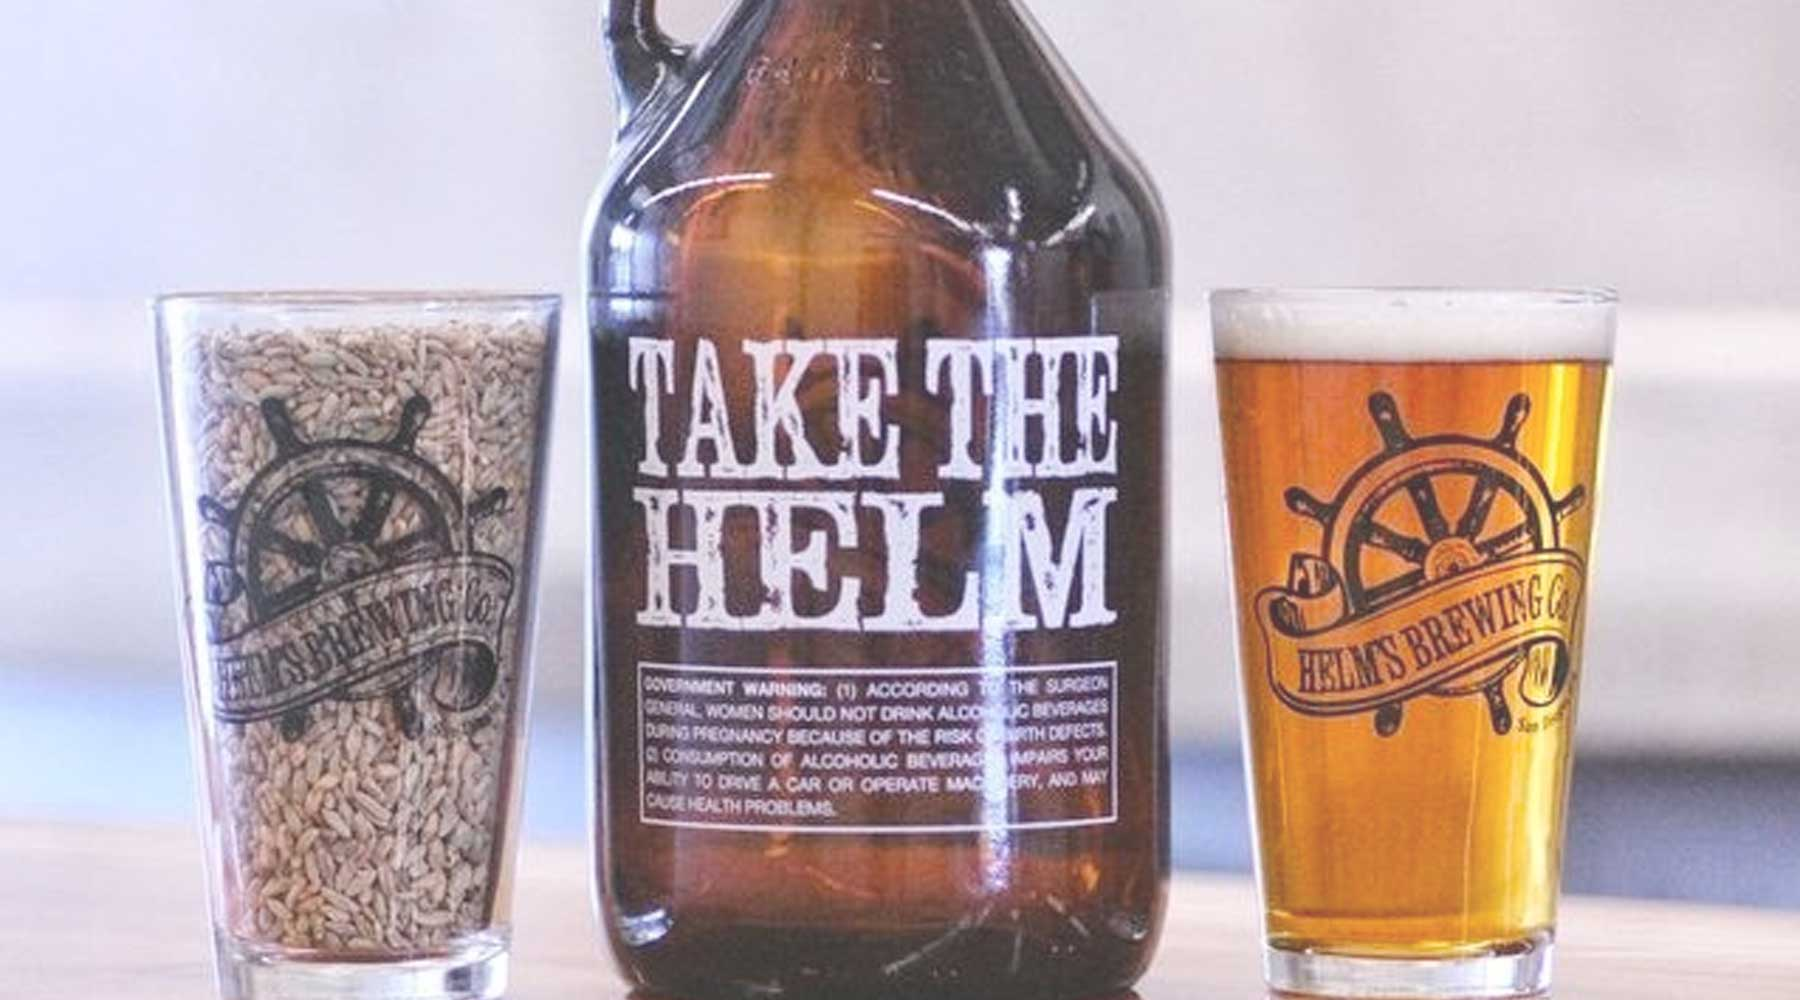 Helm's Brewing Co. | Just Wine